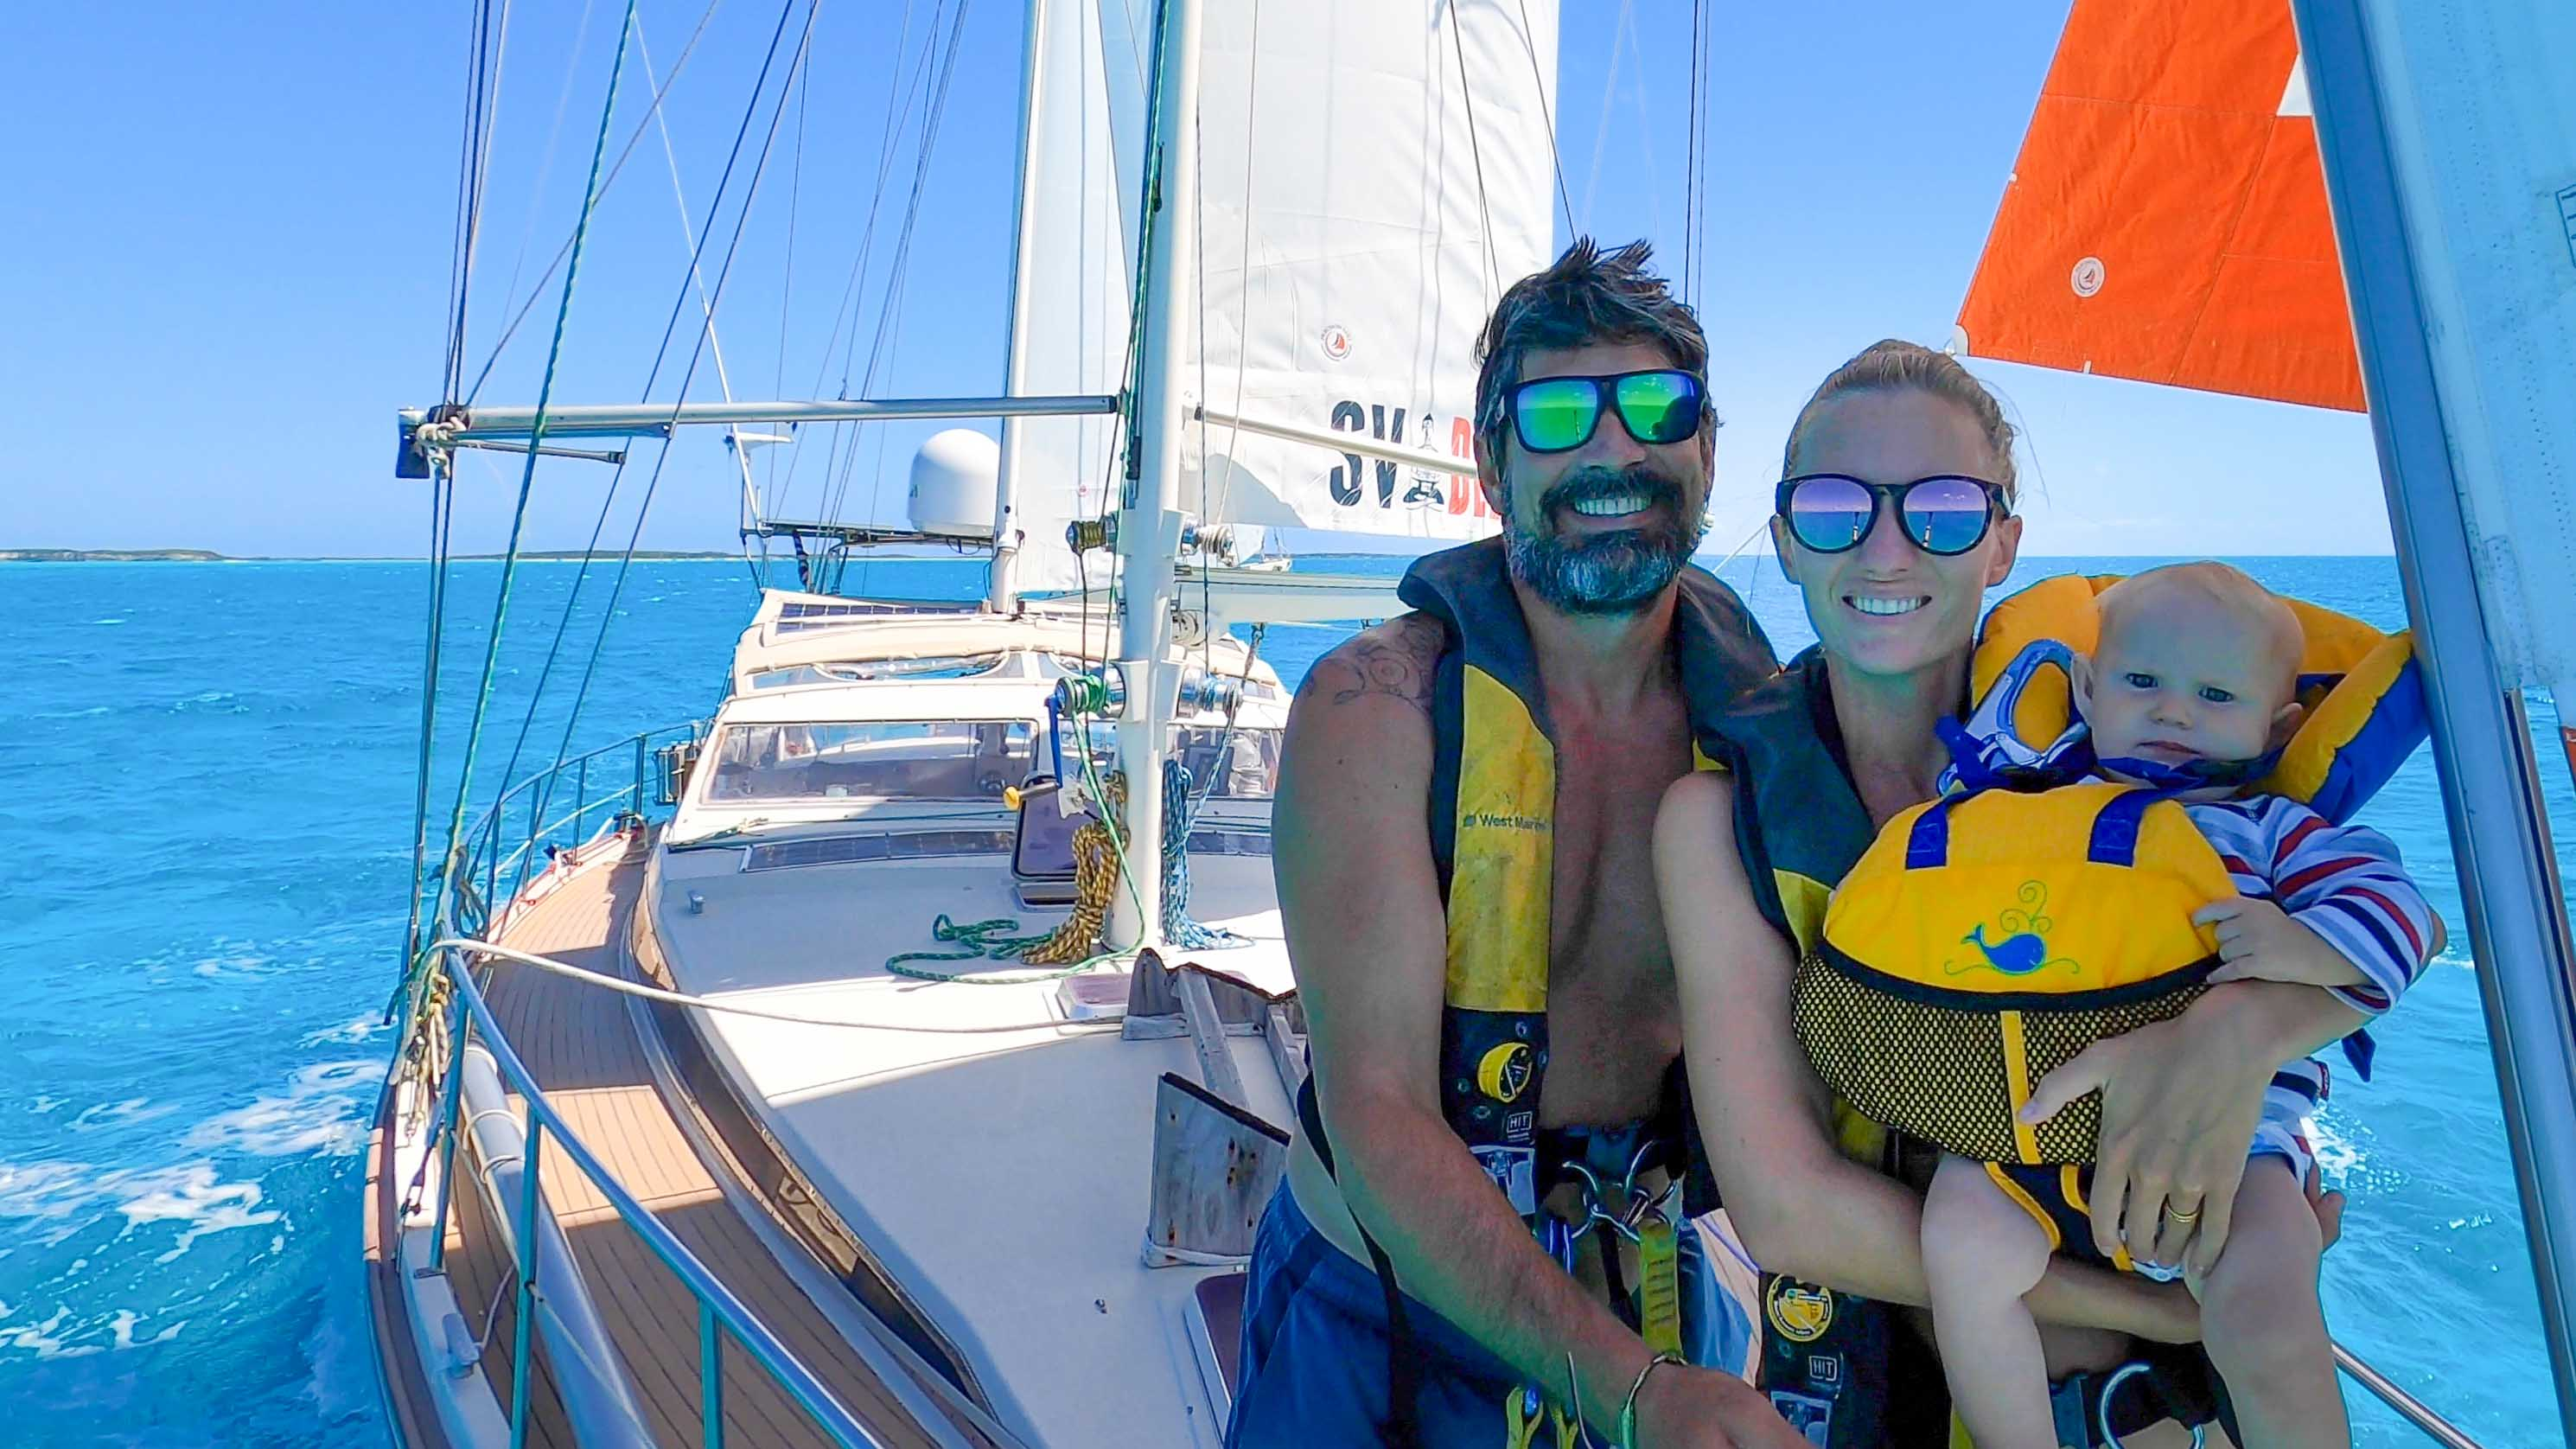 'We're vagabonds of the sea': How this YouTuber quit his job to sail the world